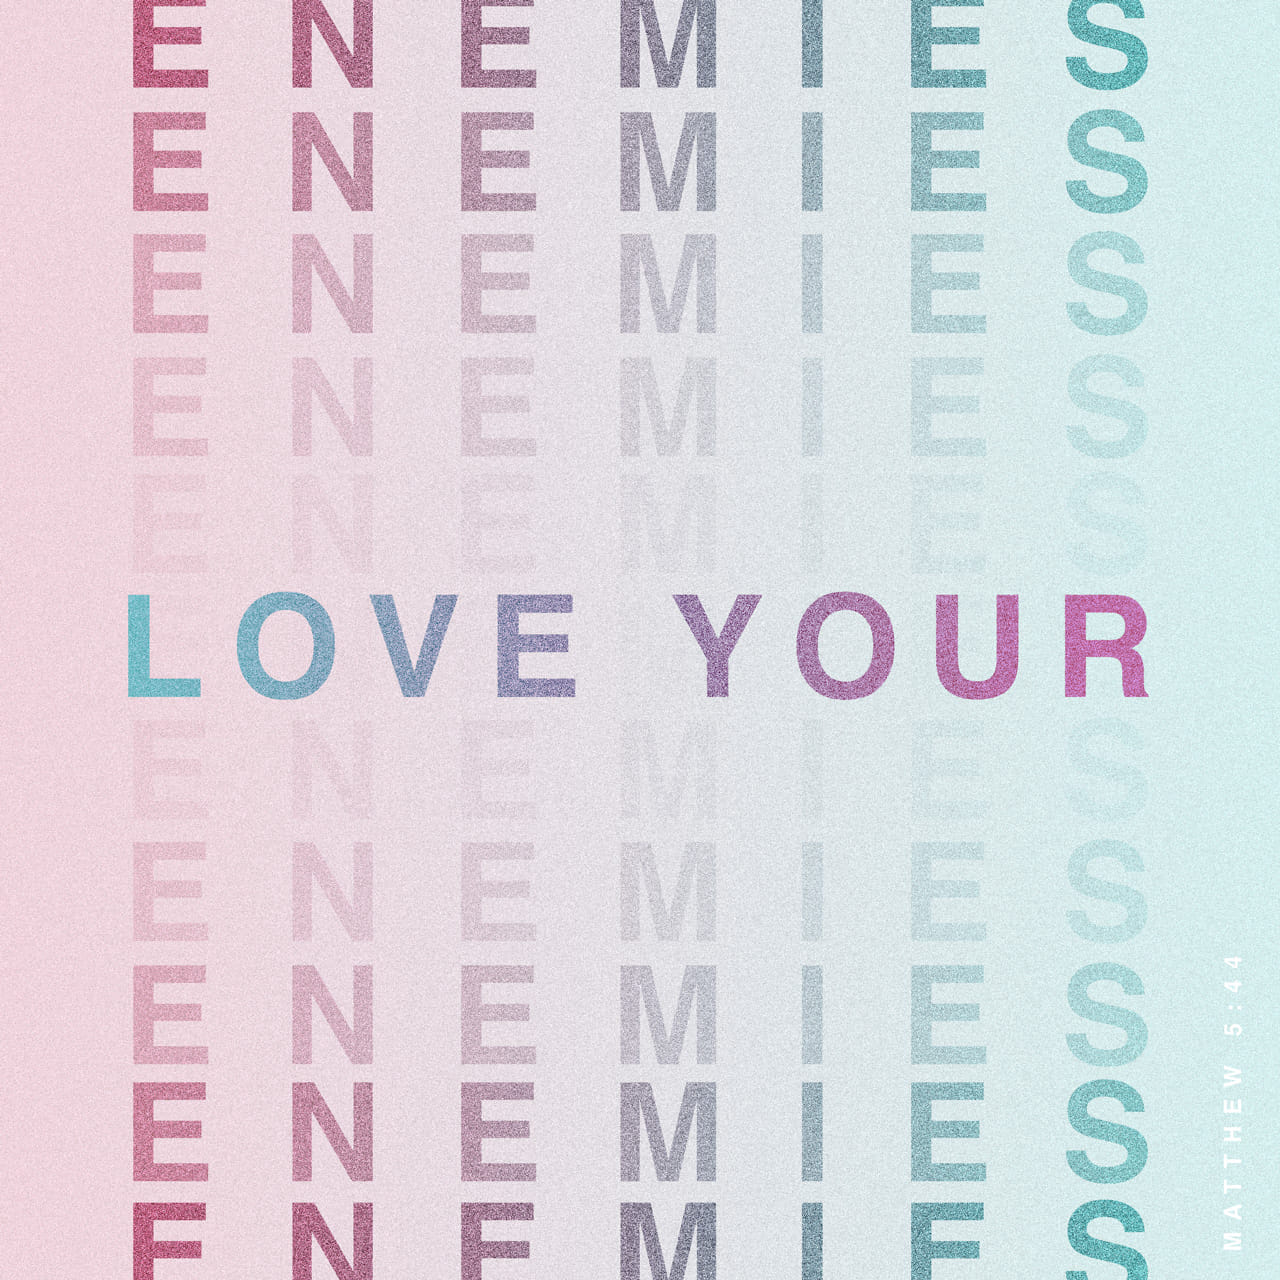 Matthew 5:44 But I say unto you, Love your enemies, bless them that curse you, do good to them that hate you, and pray for them which despitefully use you, and persecute you | King James Version (KJV)